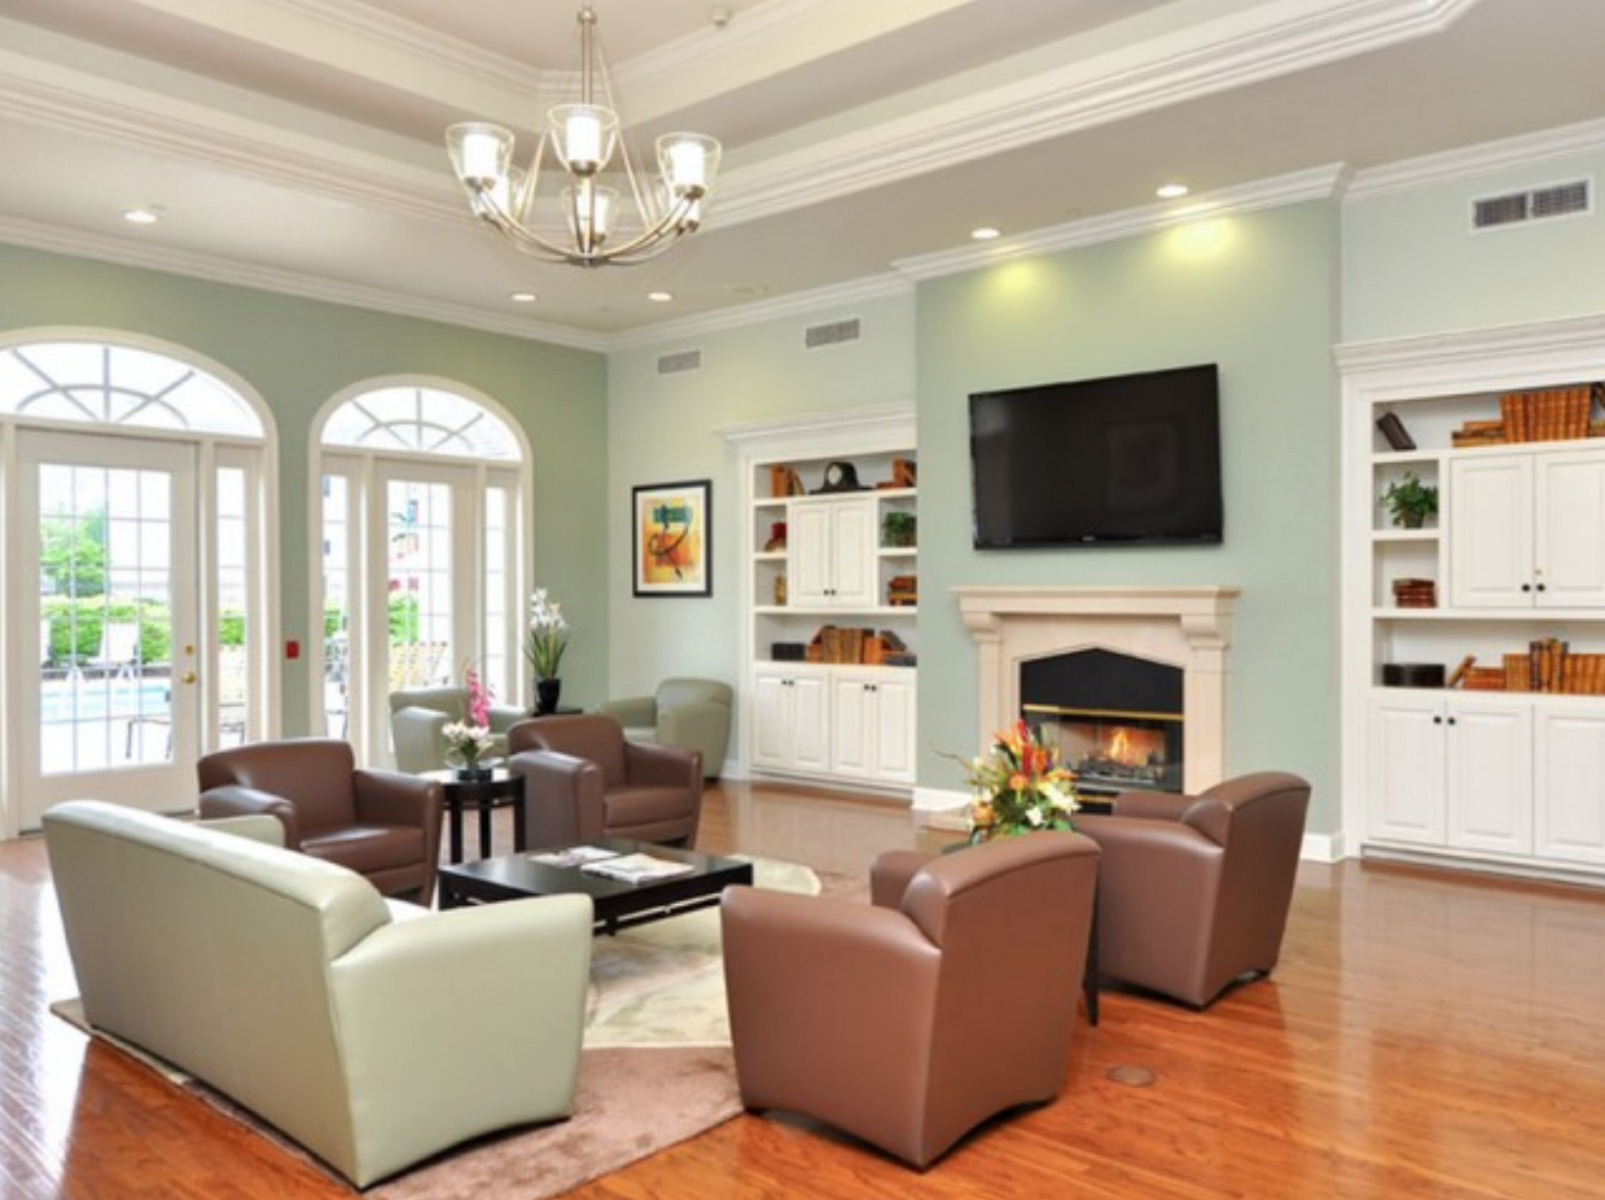 1 - Clubhouse Sitting Room